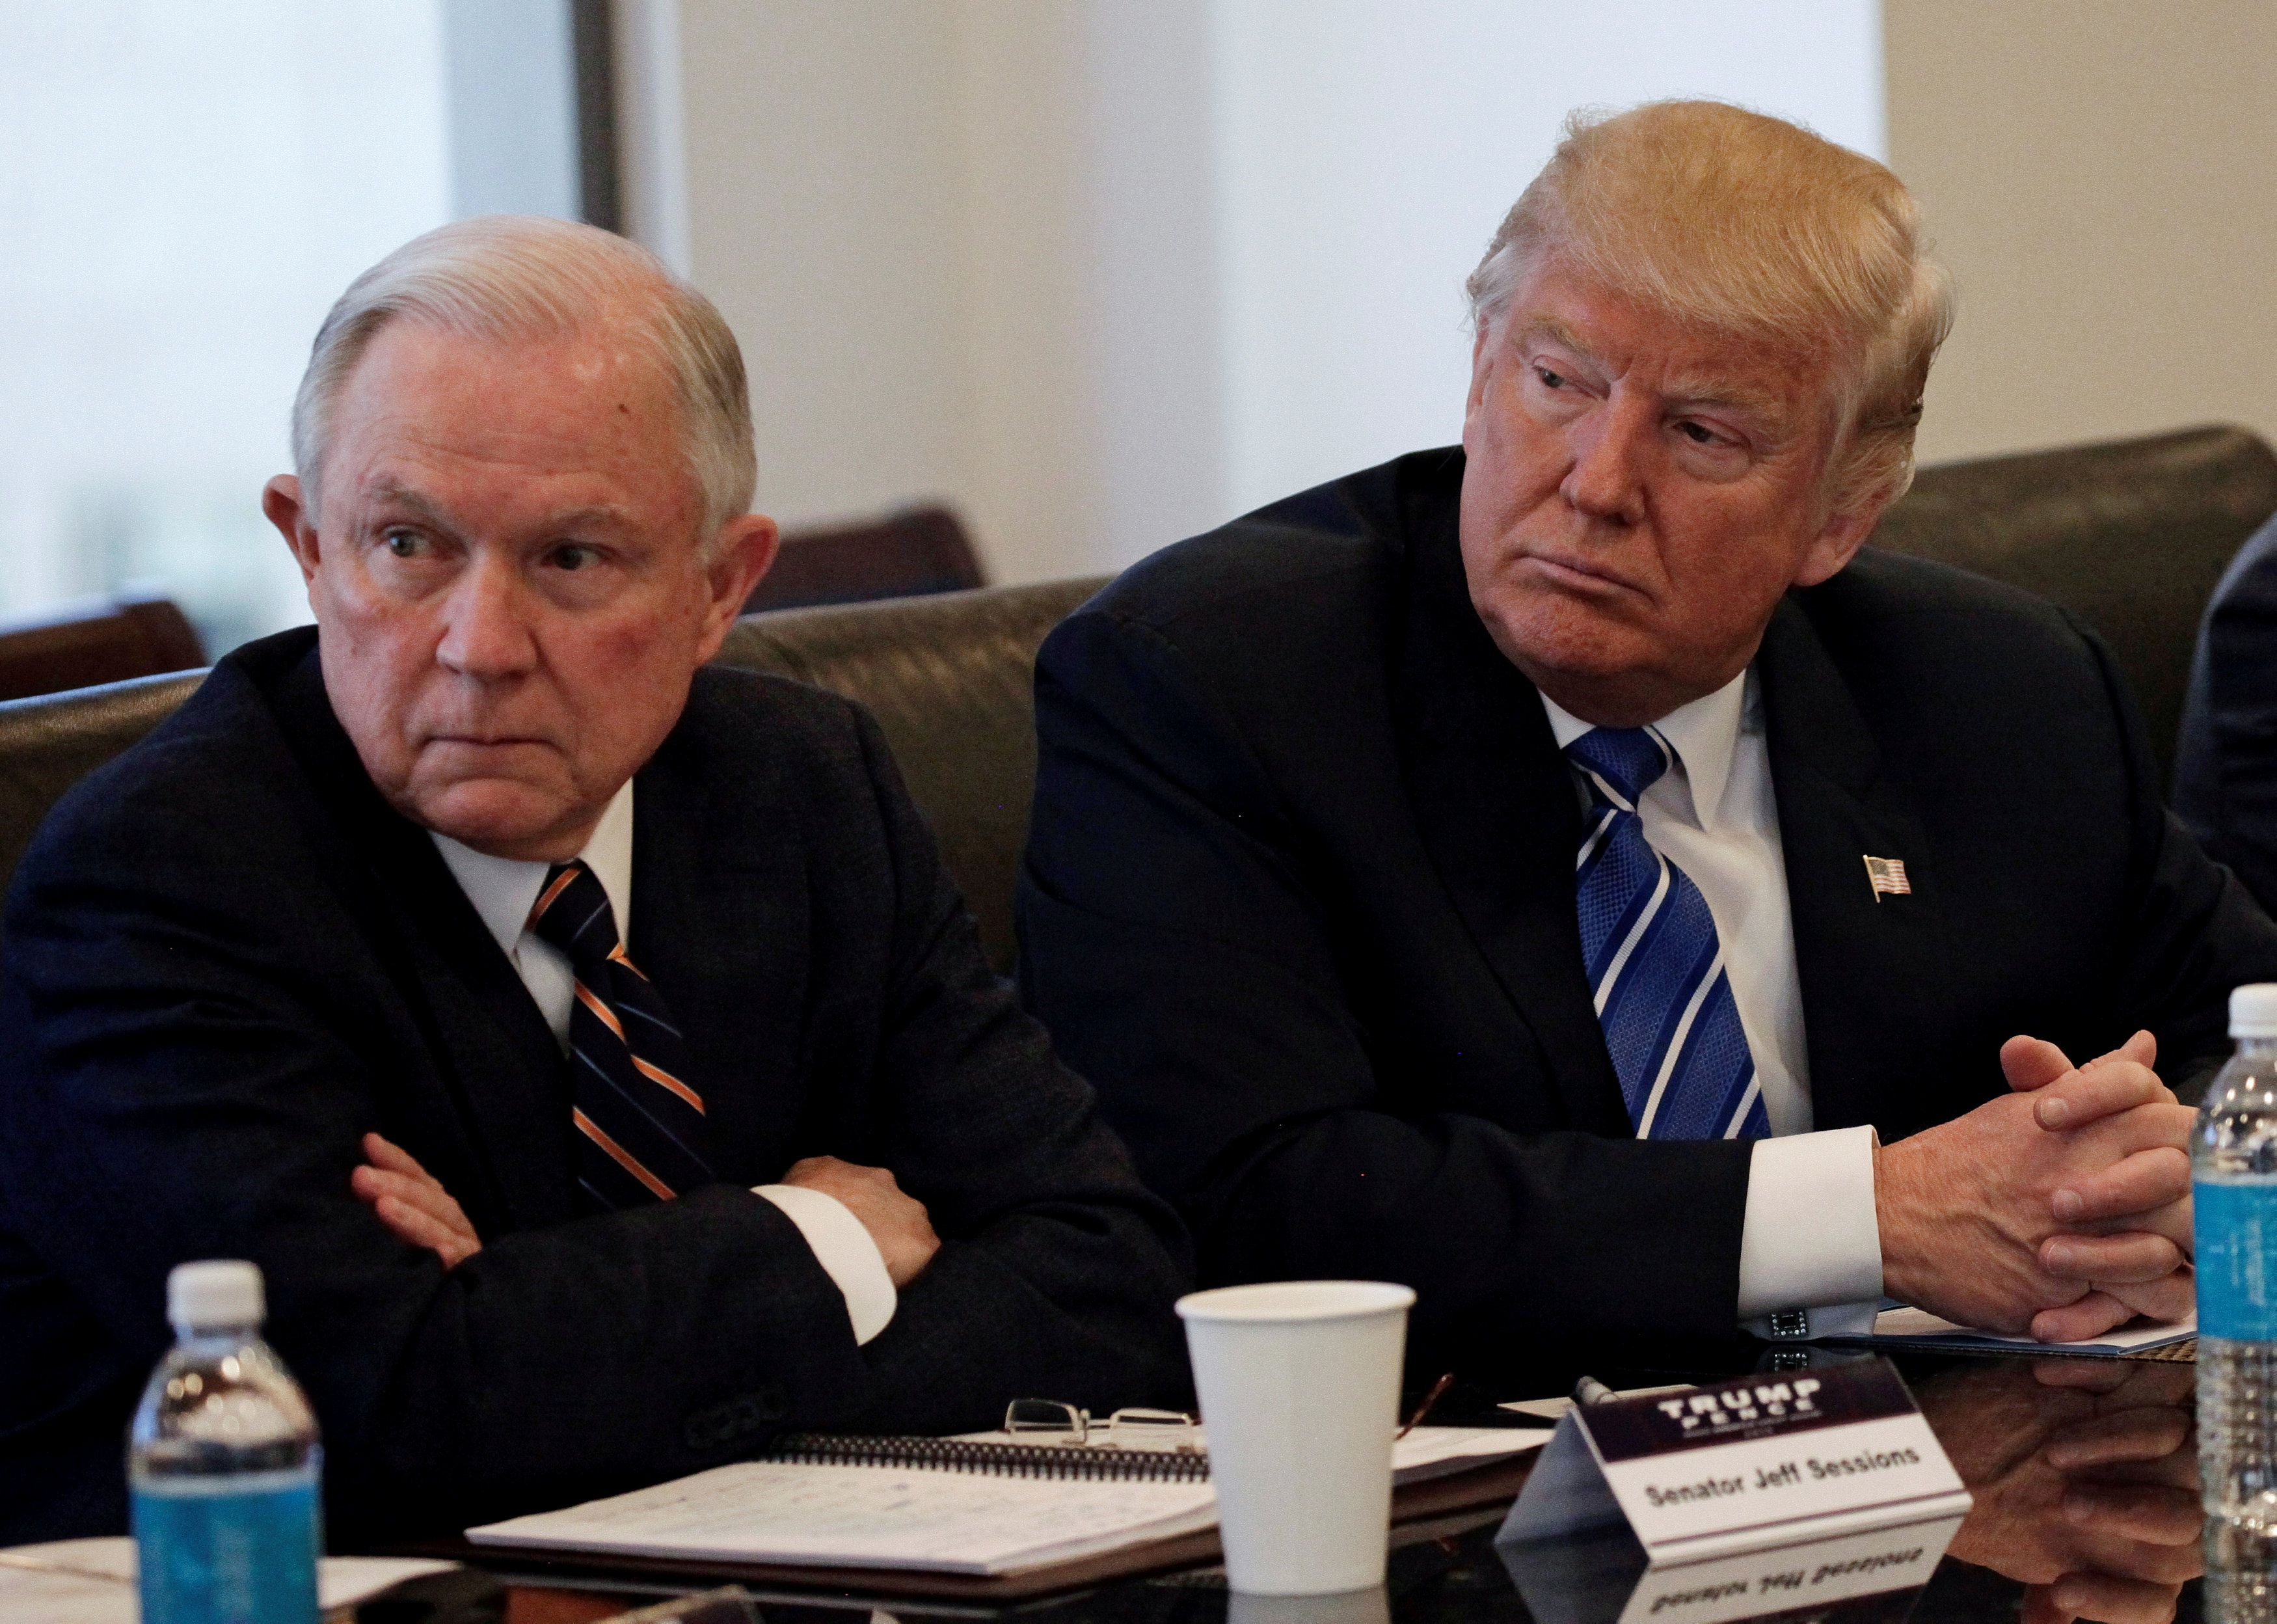 Se arrepiente Donald Trump de haber nombrado fiscal general a Jeff Sessions